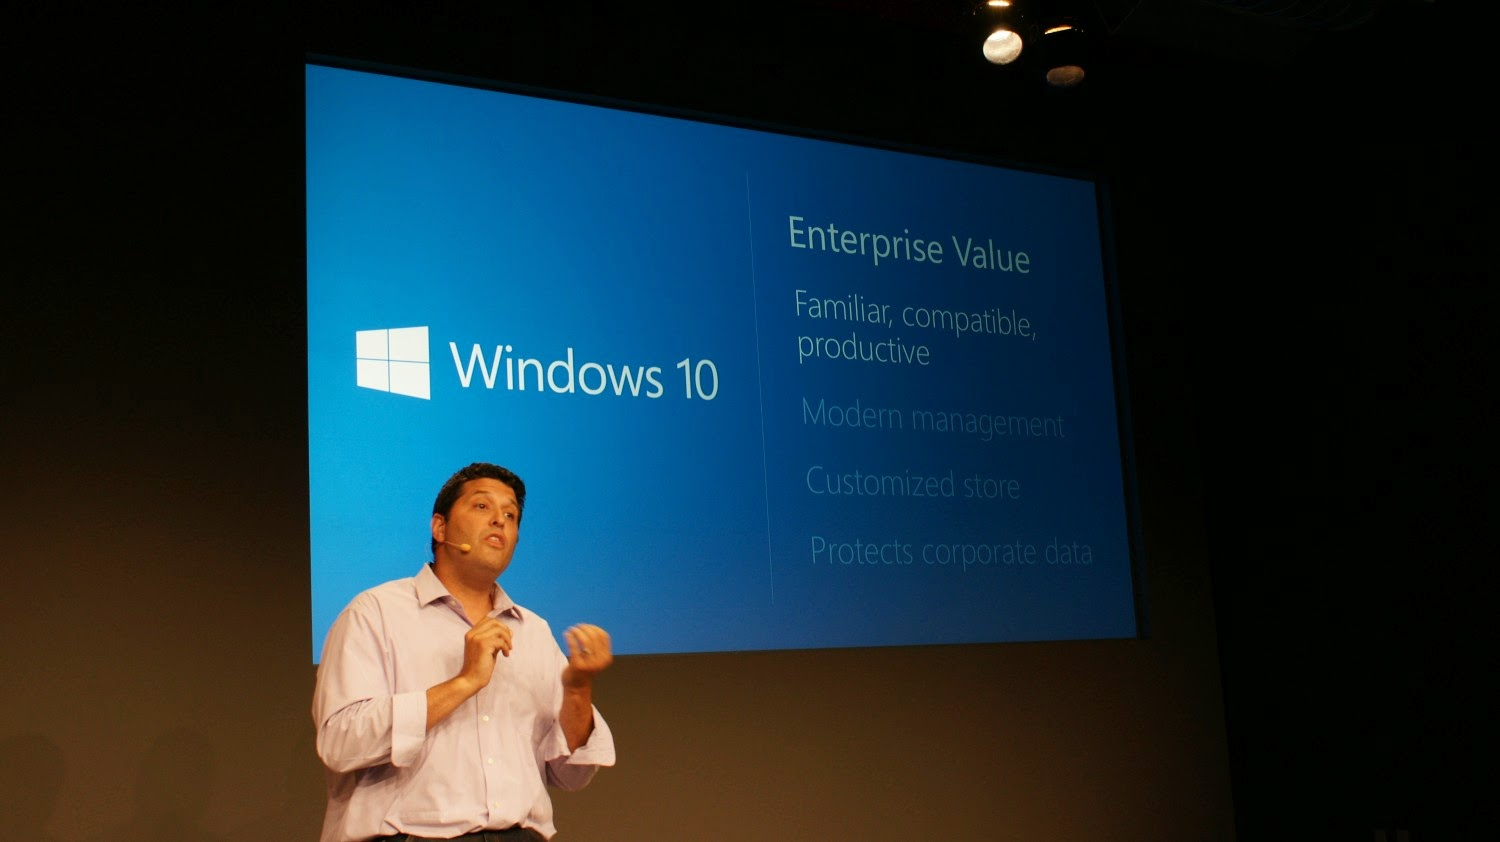 Windows 10 by Microsoft